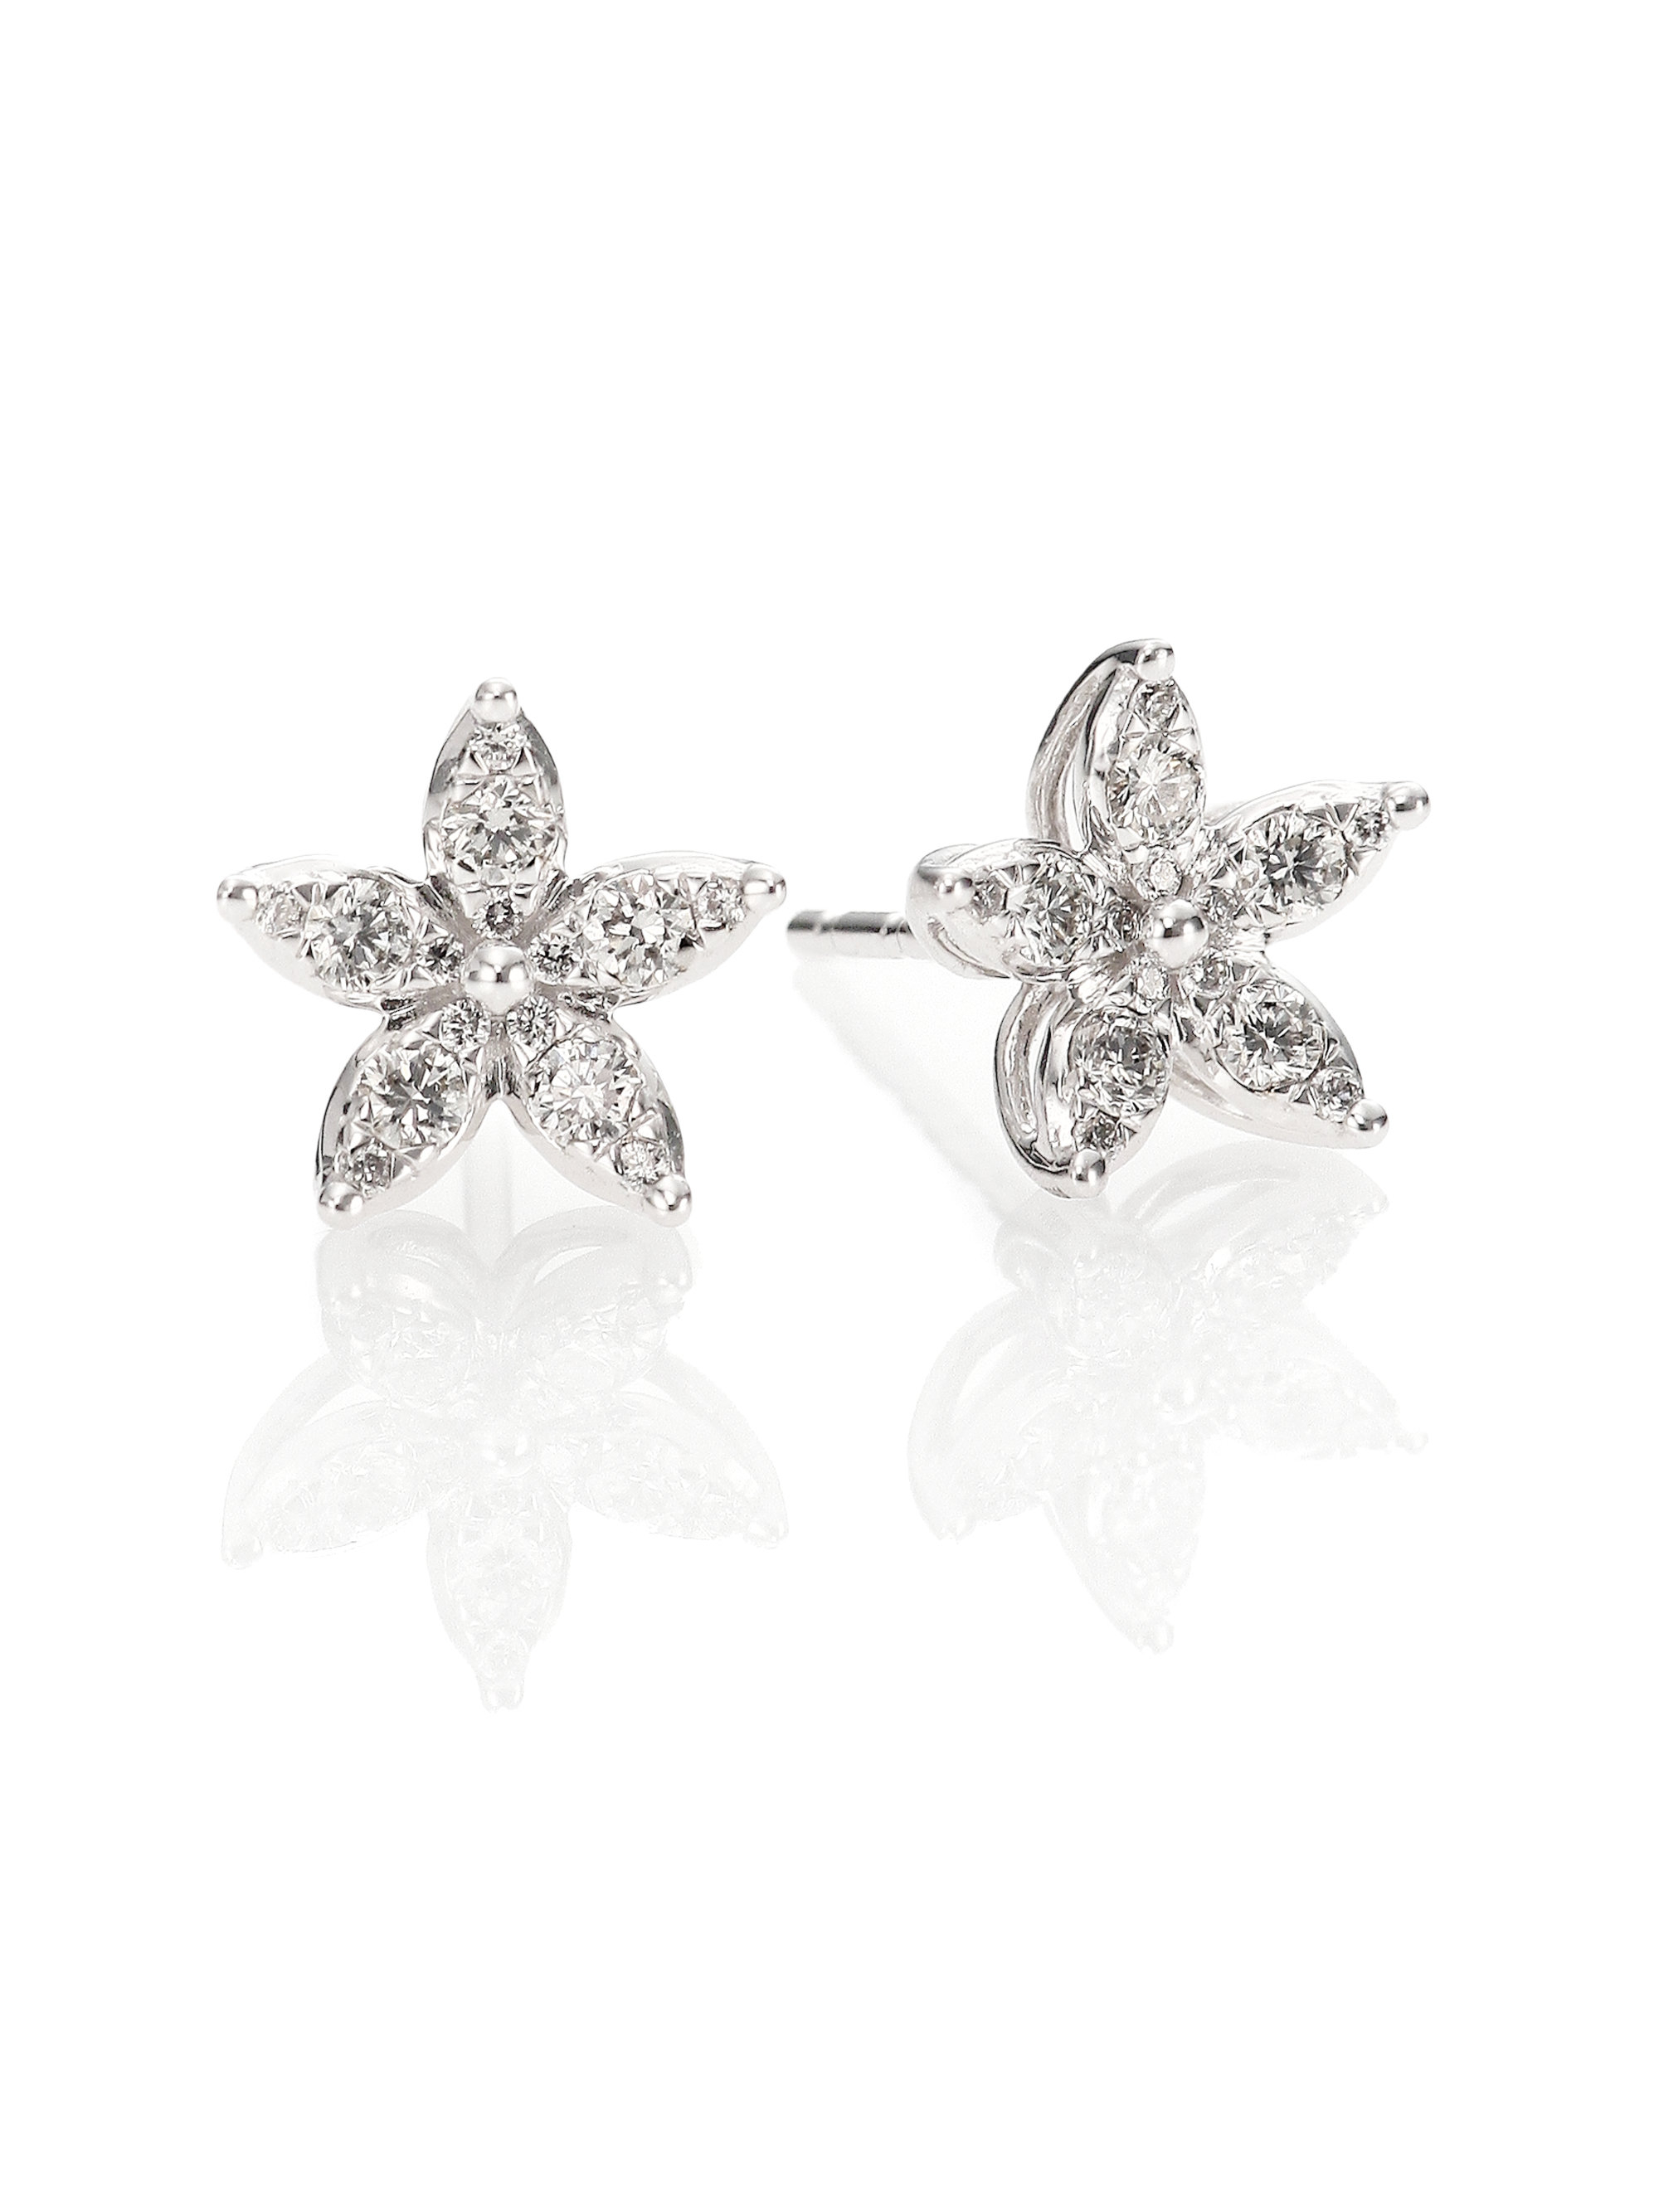 jewelry dp silver stud childrens white s sterling amazon com earrings children flower